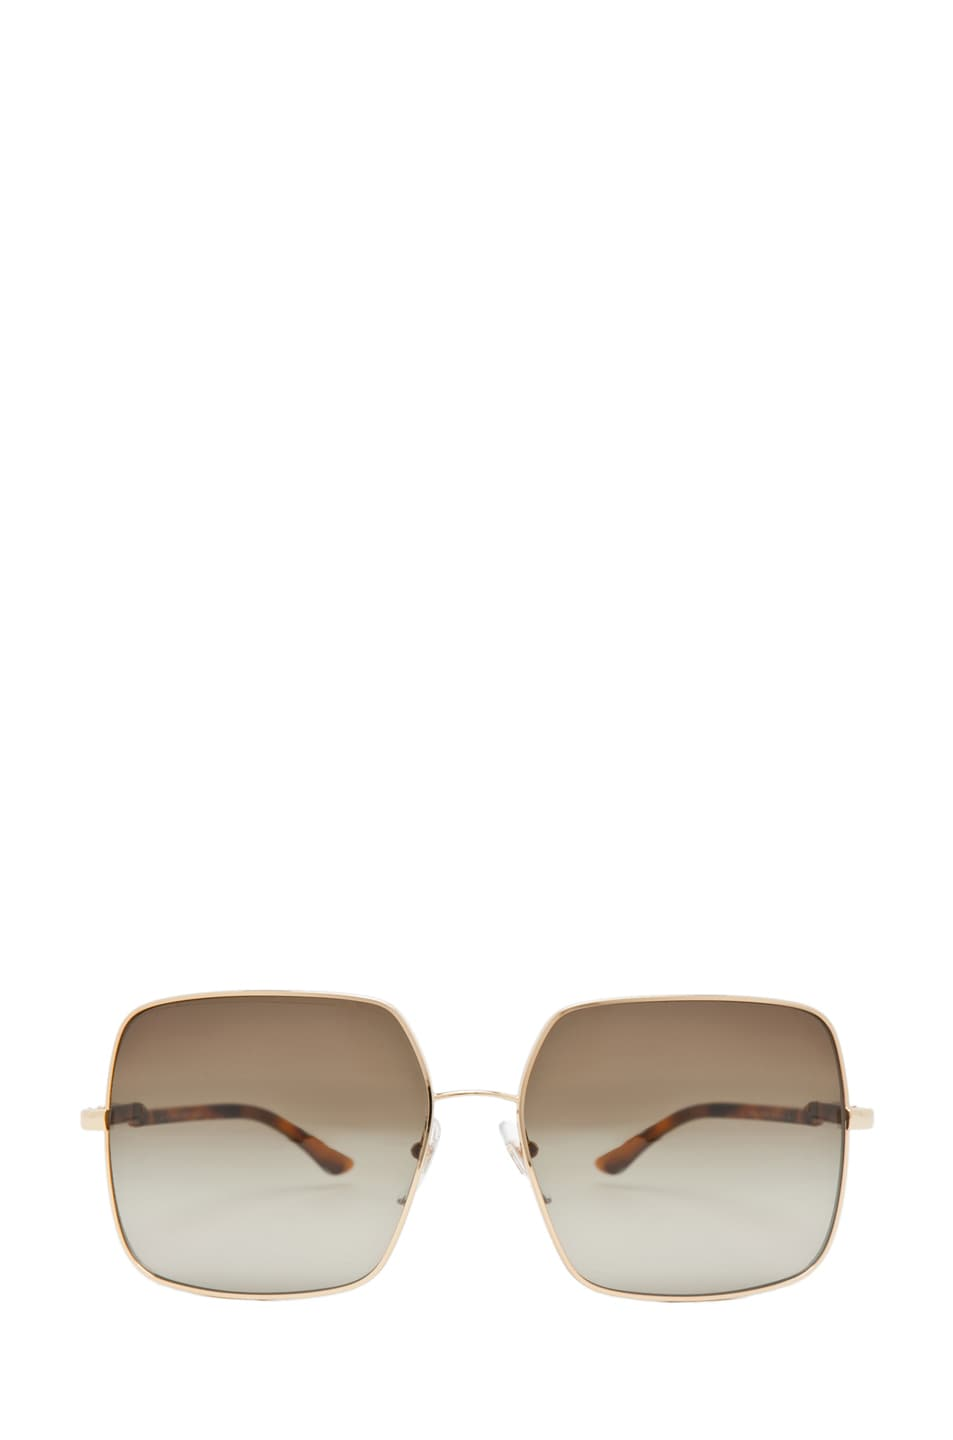 Image 1 of Stella McCartney Sunglasses in Blonde Tortoise